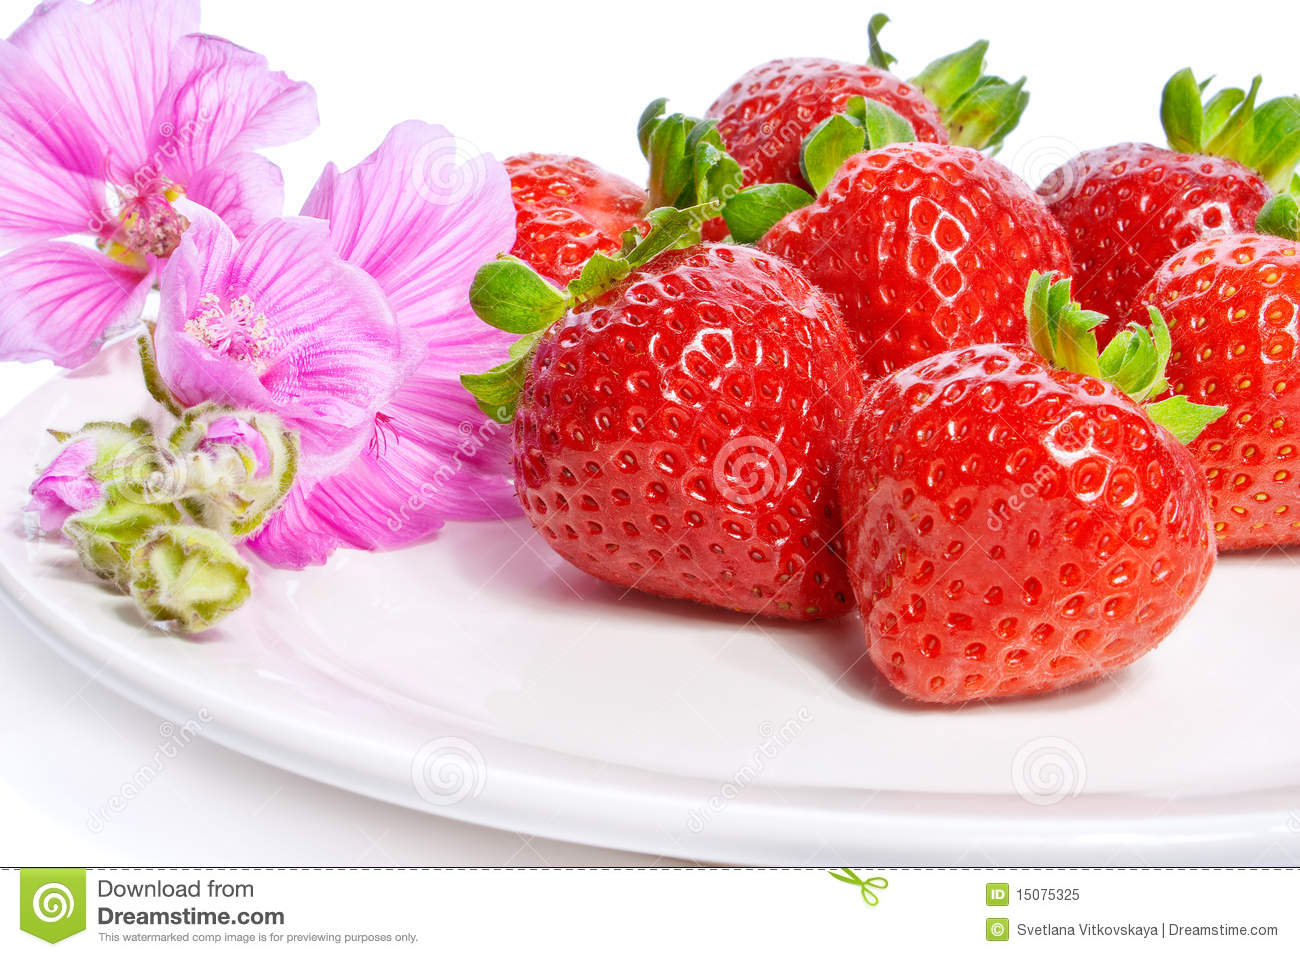 Image of strawberries and flowers on a plate